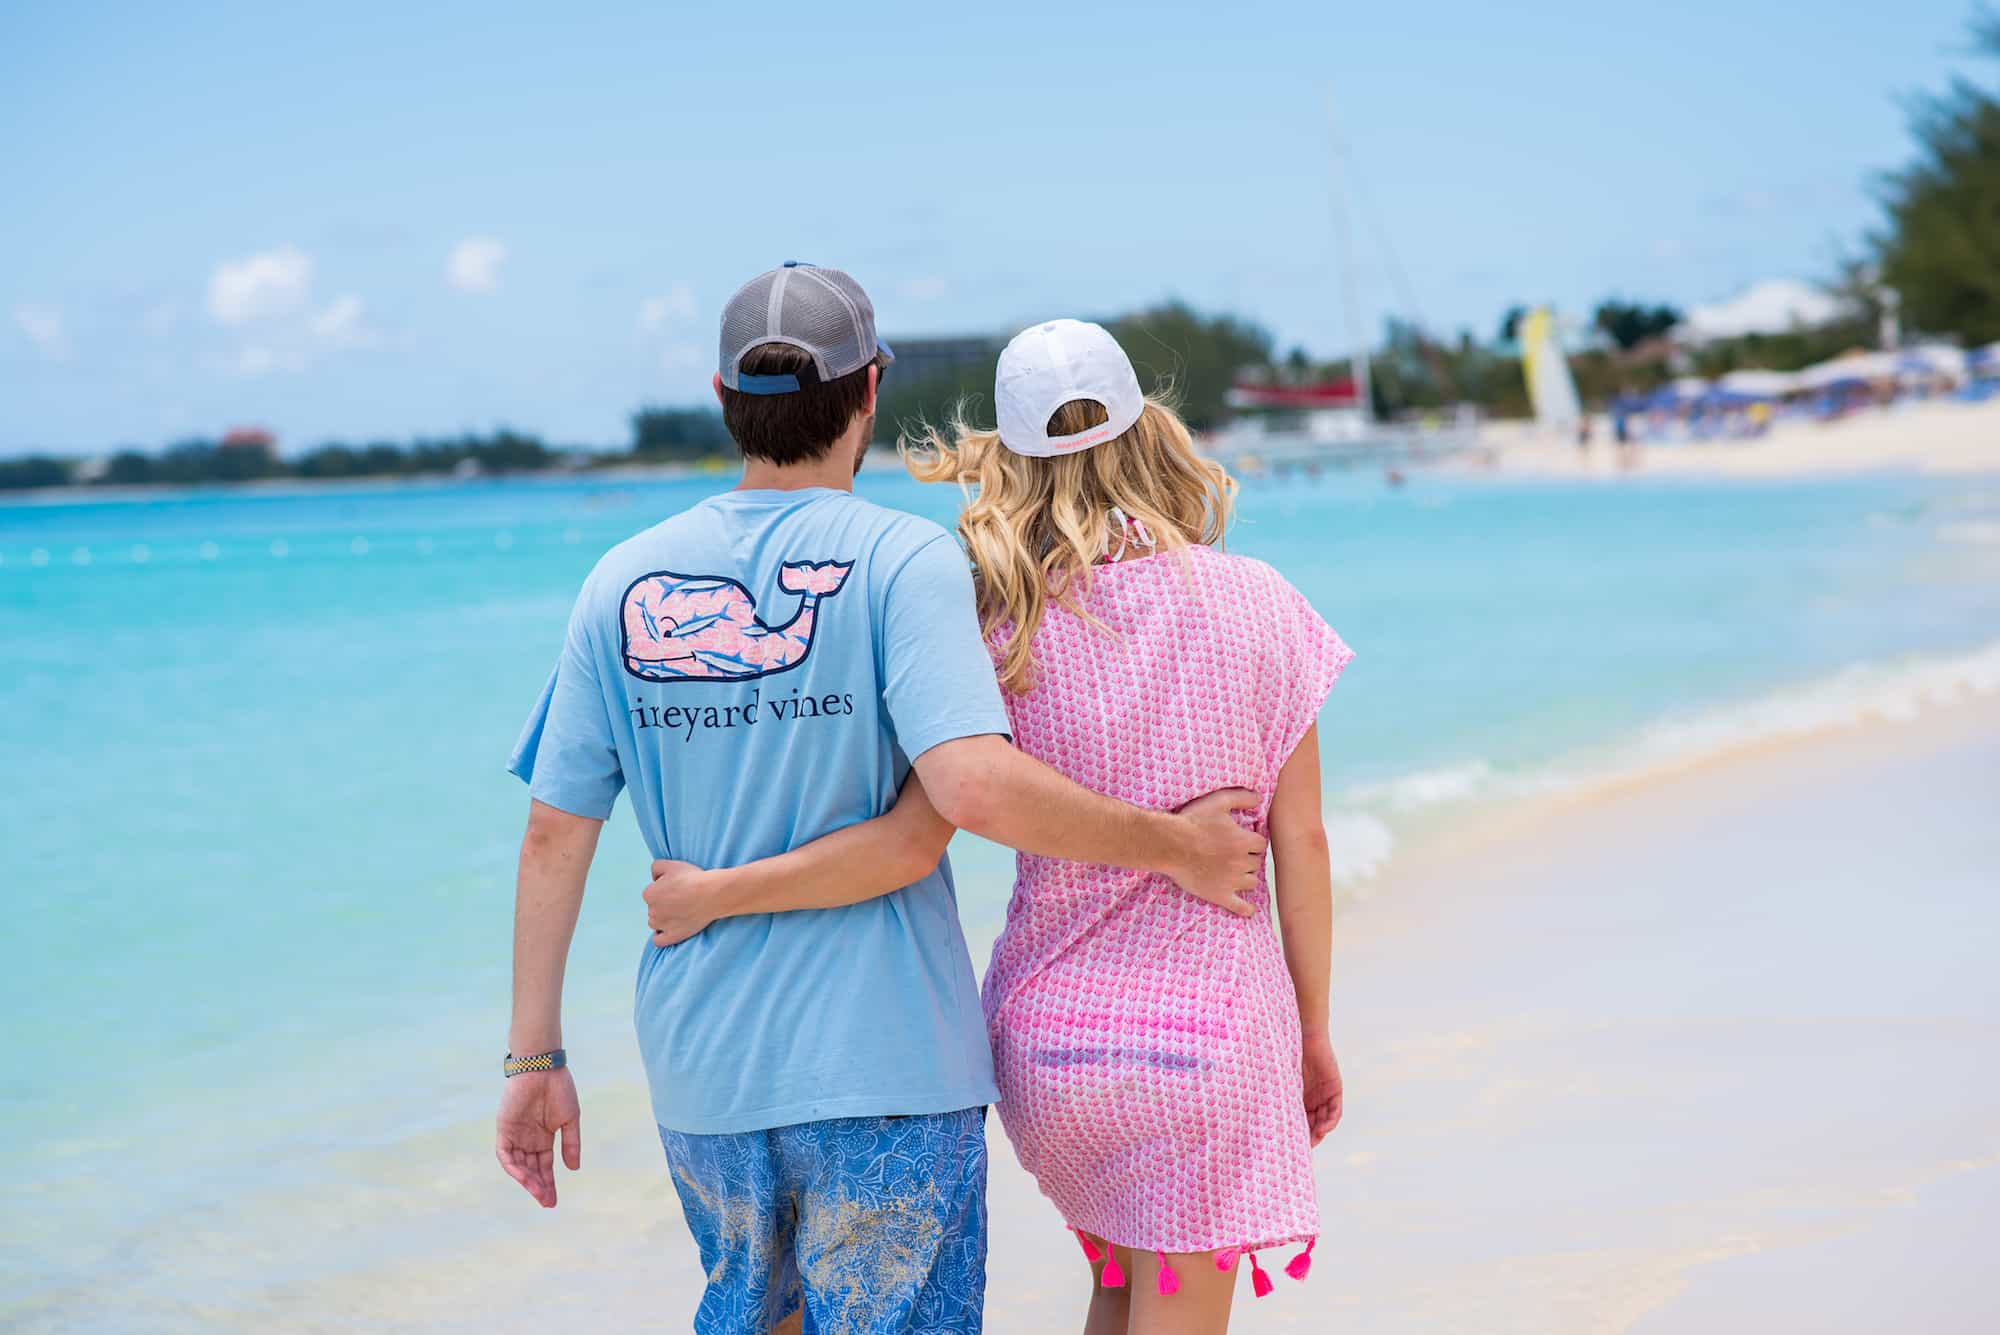 Vineyard Vines Swim Summer 2016